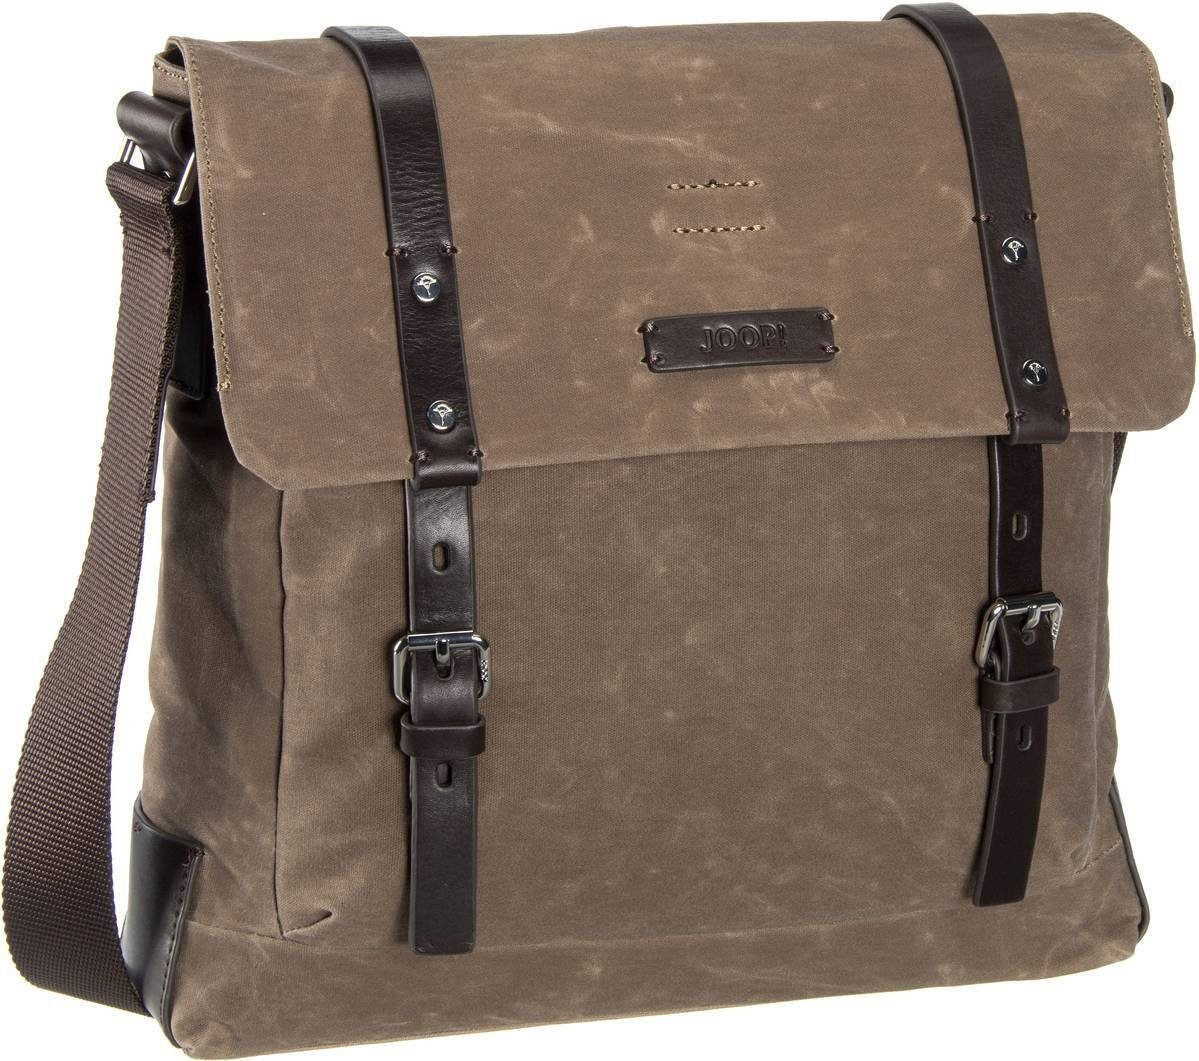 Joop Waxed Canvas Belos Flap Bag